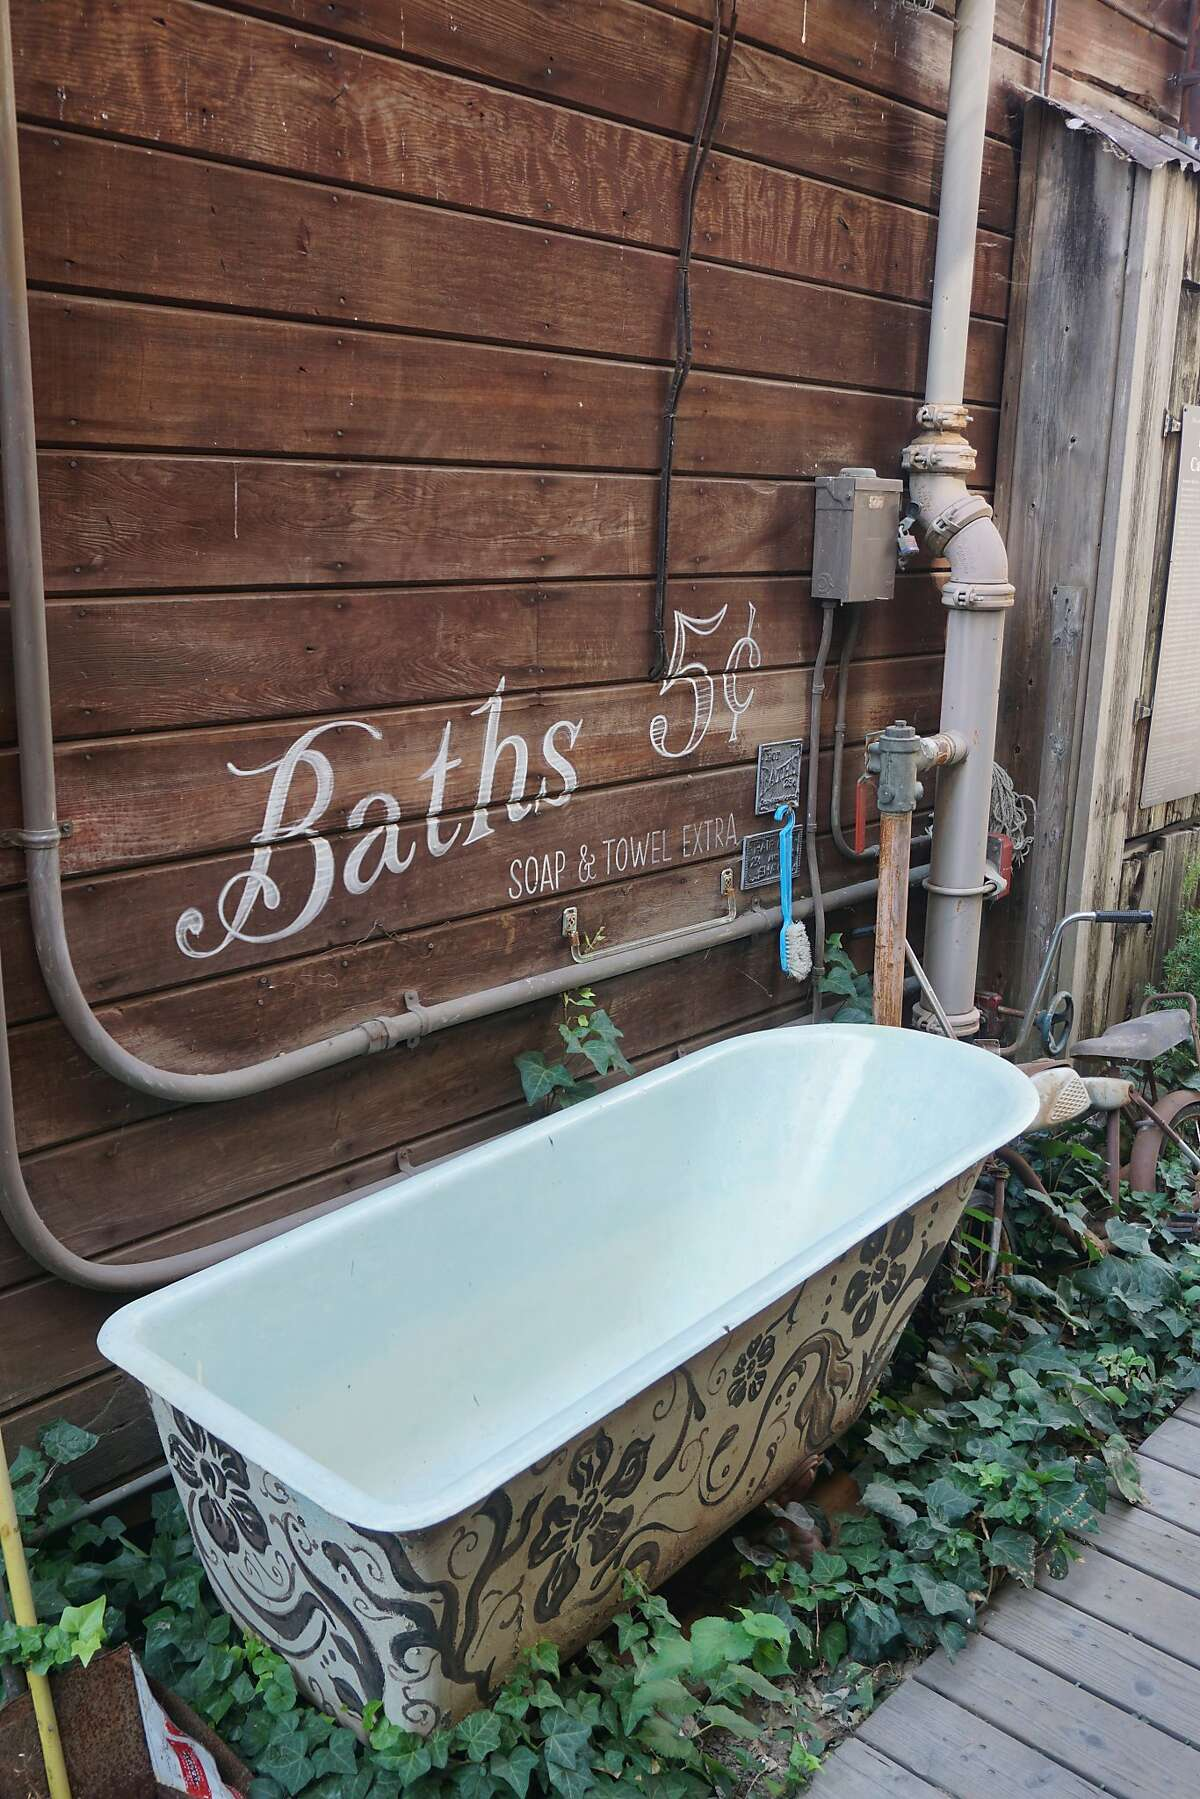 A decorated bathtub on an alley in the historical Chinese enclave of Locke near Walnut Grove.